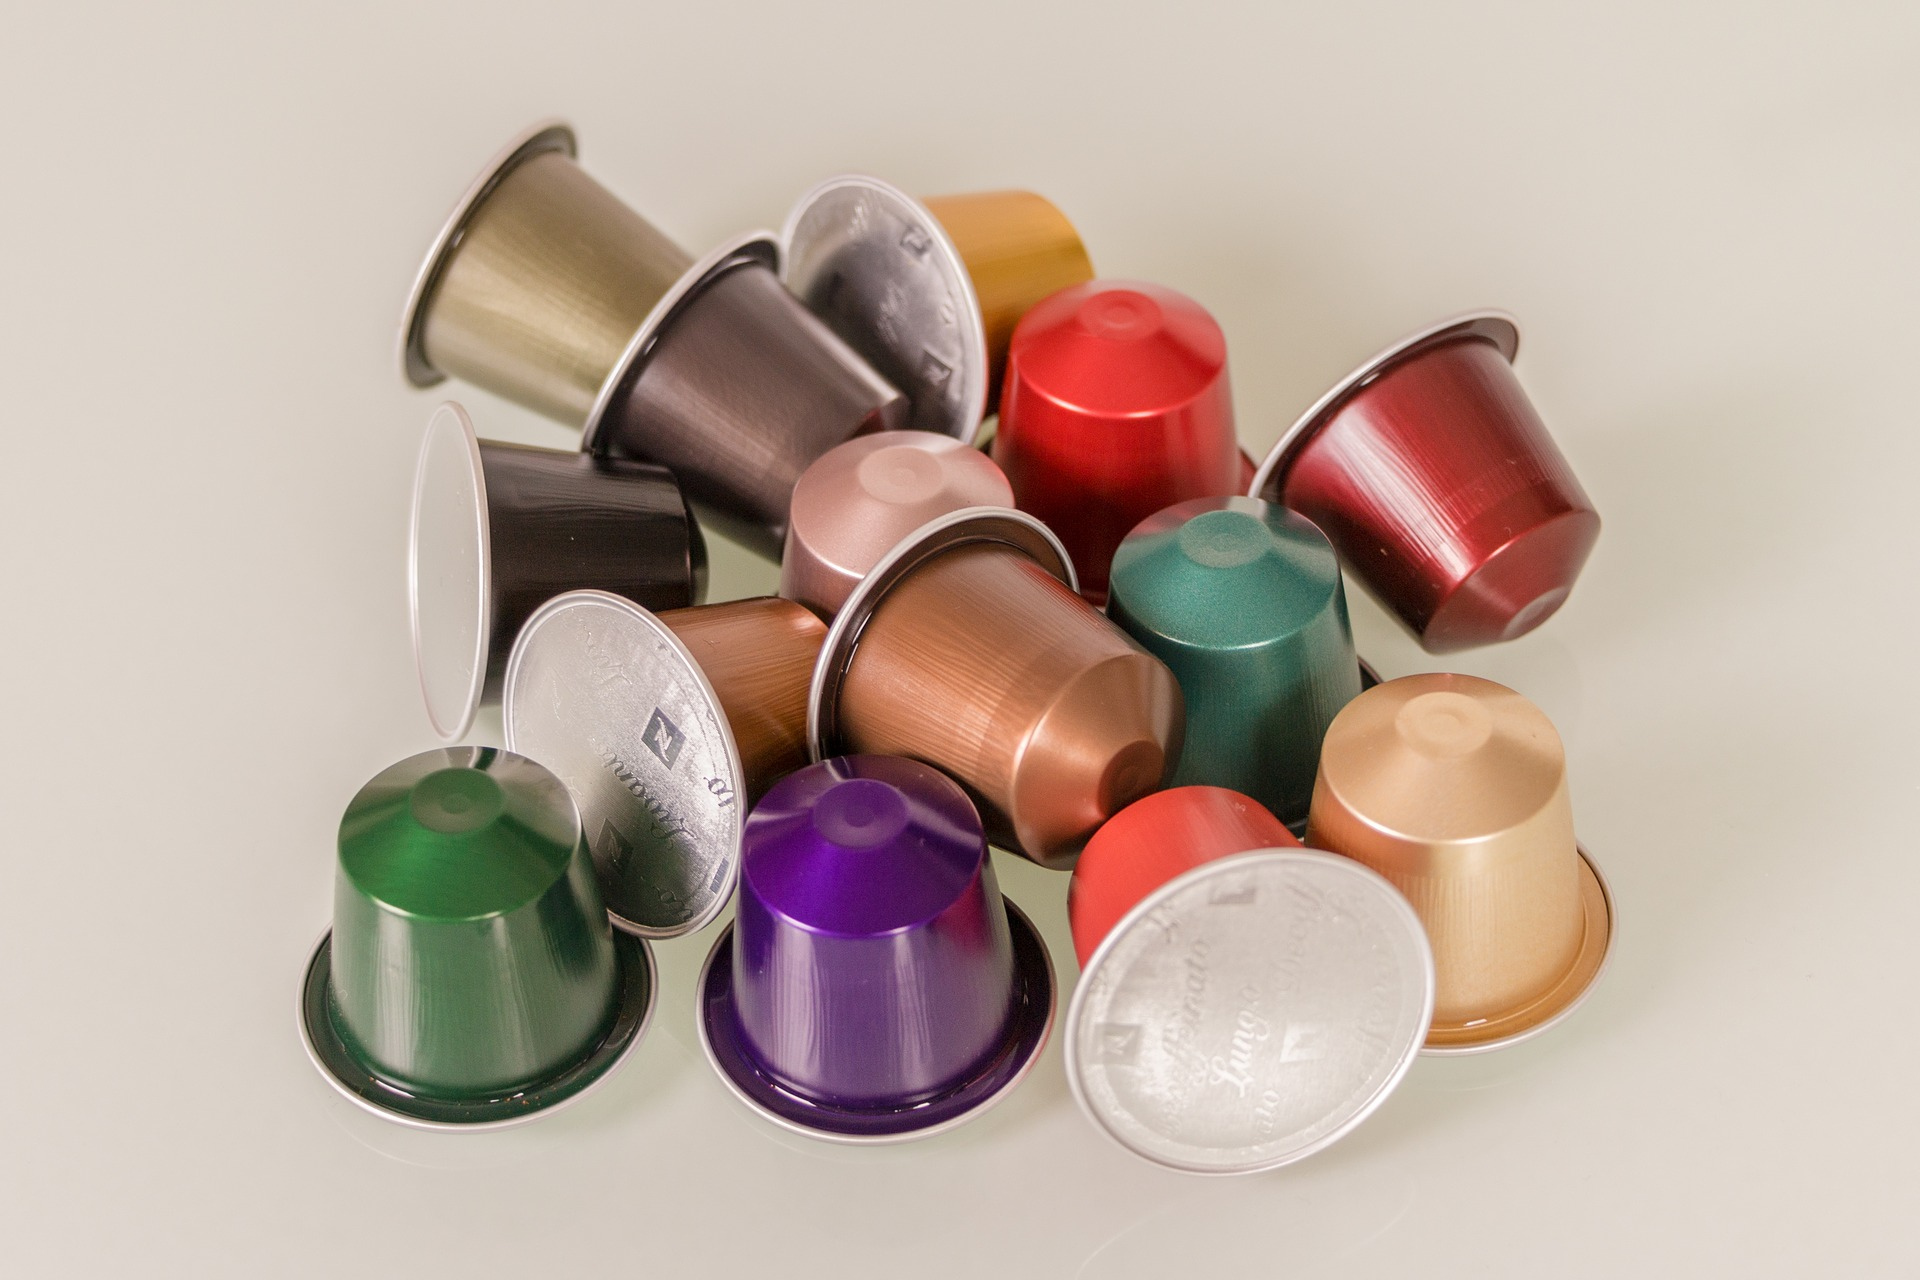 liste Capsule compatibles dolce gusto